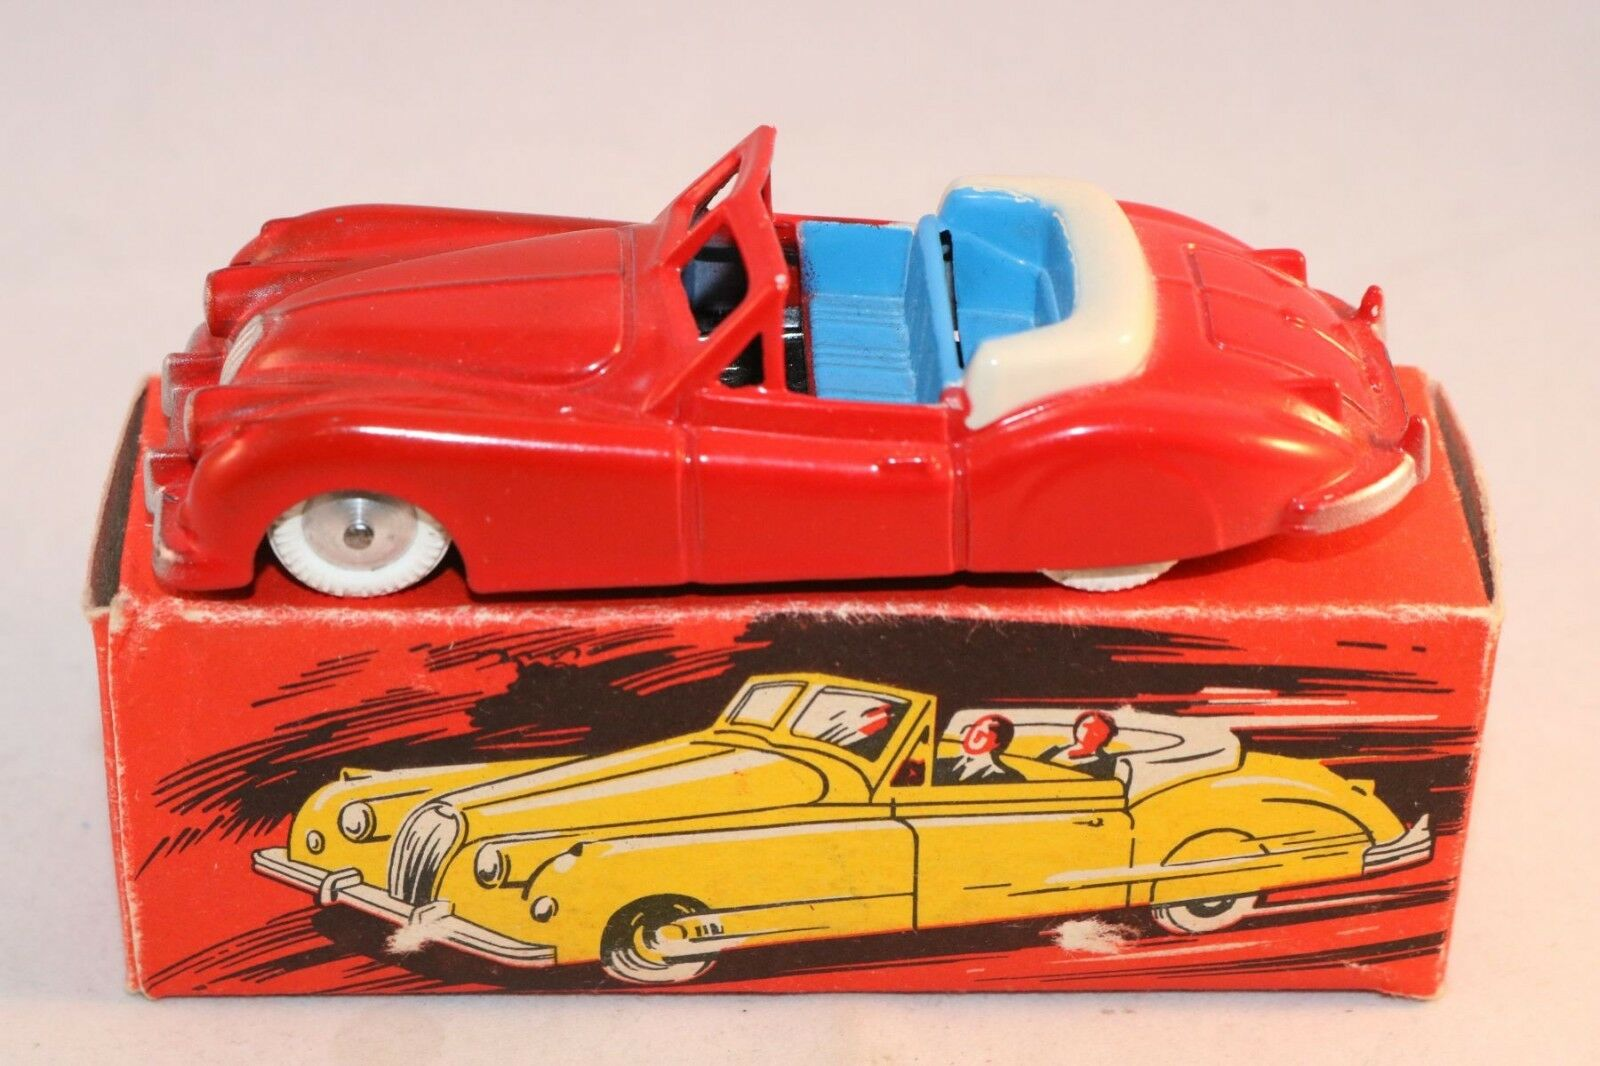 Quiralu Jaguar XK 140 rosso perfect mint in box all original in great condition